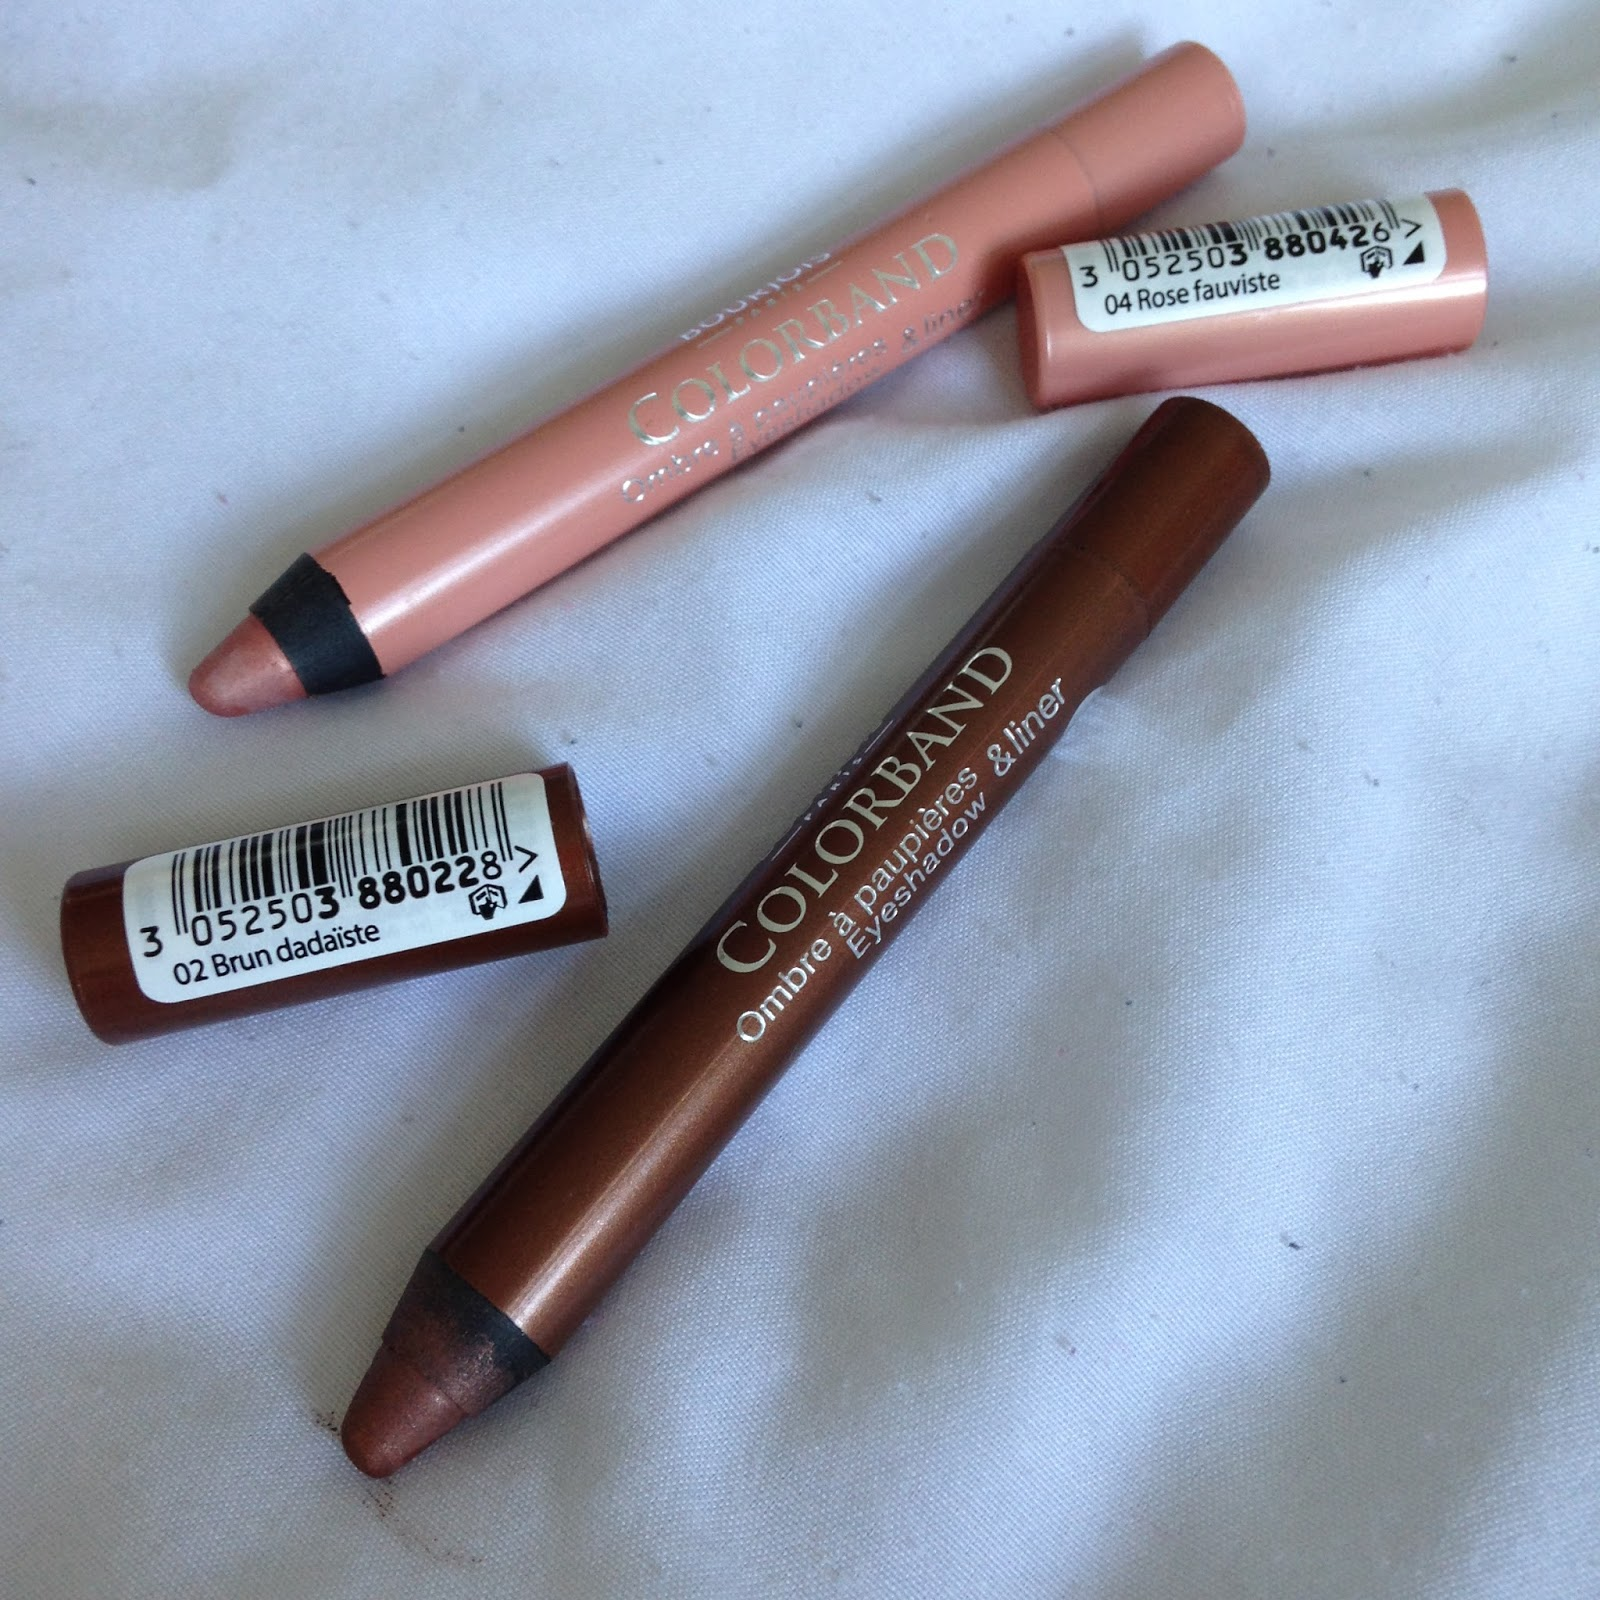 Bourjois Colorband 2 in 1 Eyeshadow & Liner review and swatch